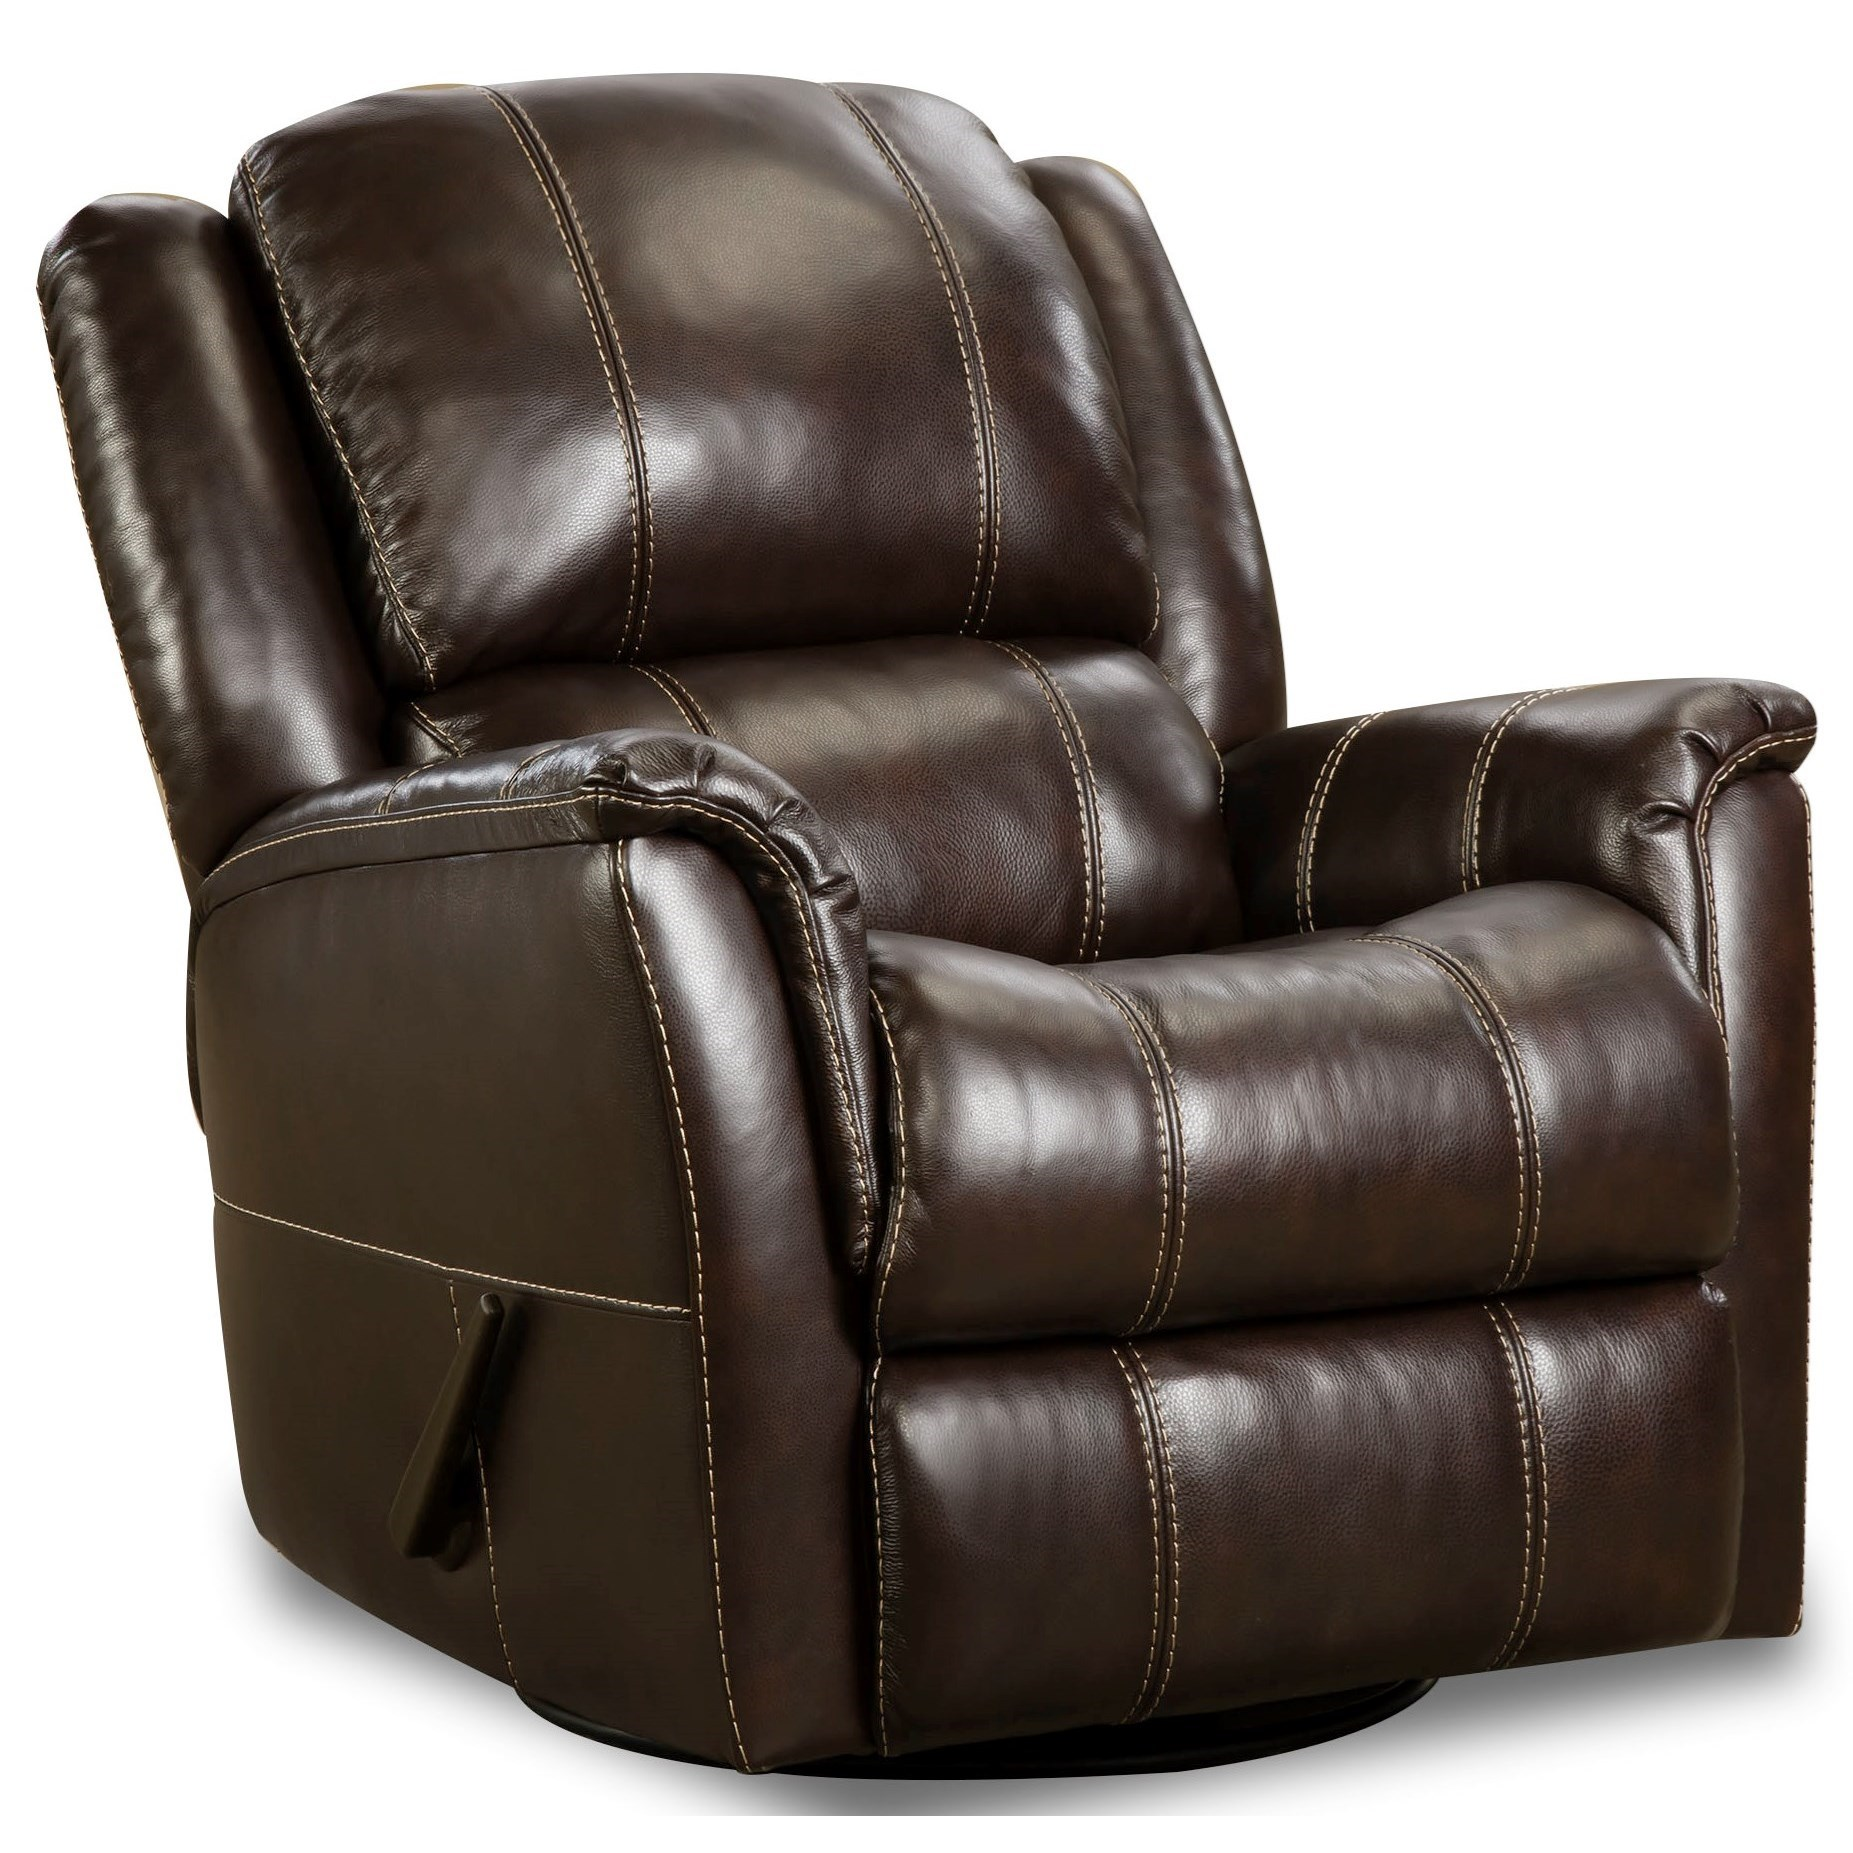 Mercury Swivel Glider Recliner by HomeStretch at Steger's Furniture